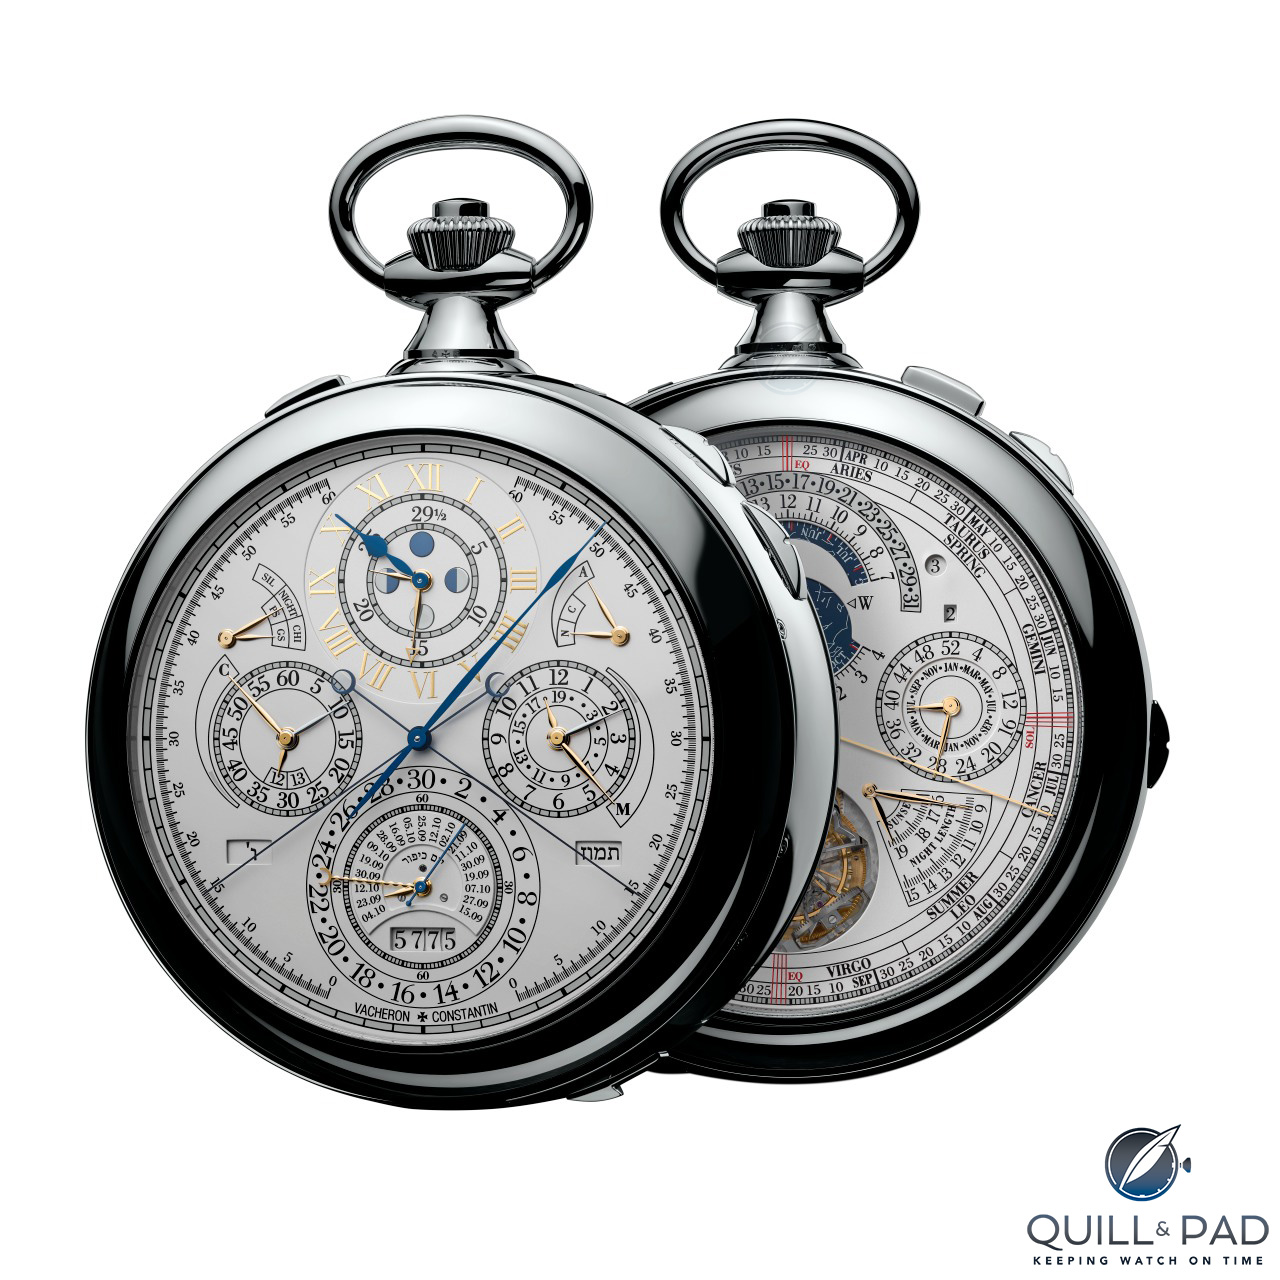 Complicated Vacheron Constantin Pocket Watch replica